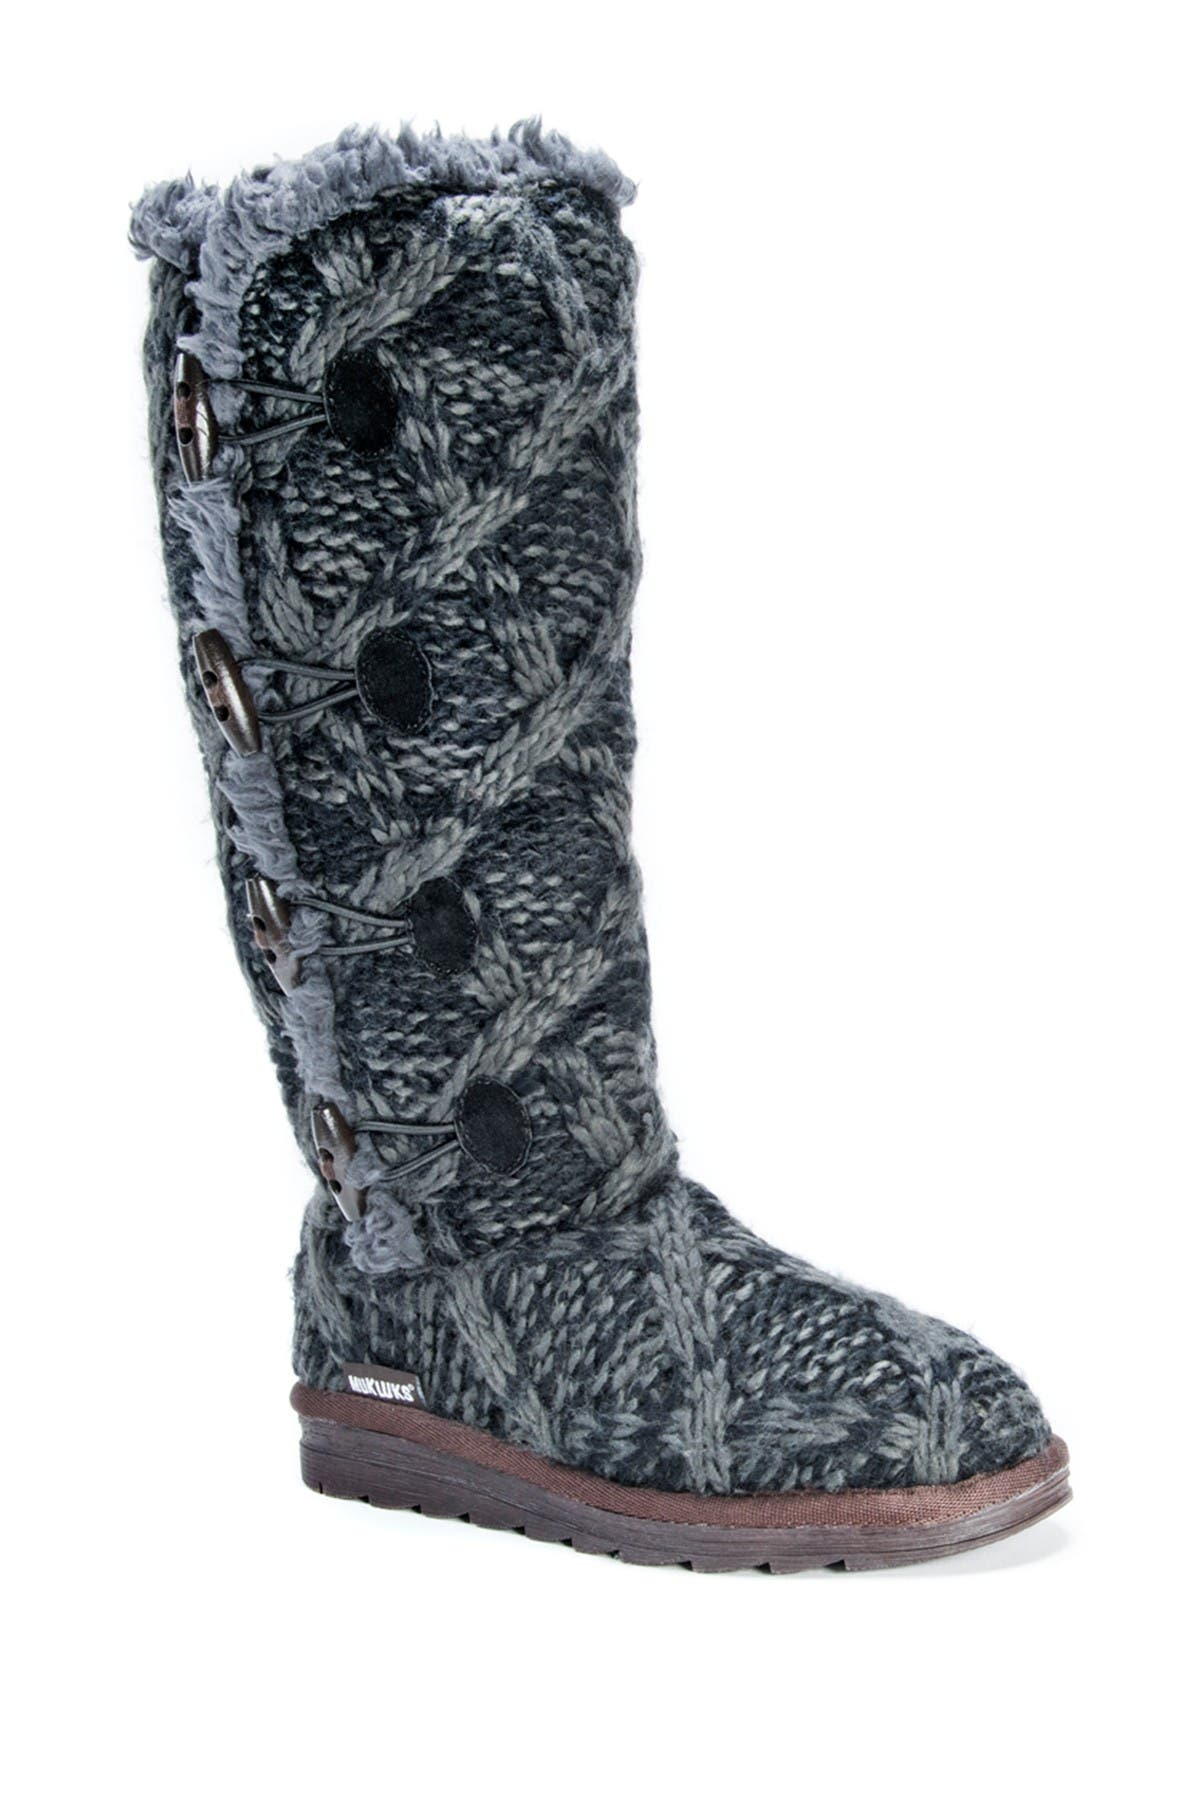 Image of MUK LUKS Felicity Faux Fur Lined Boot